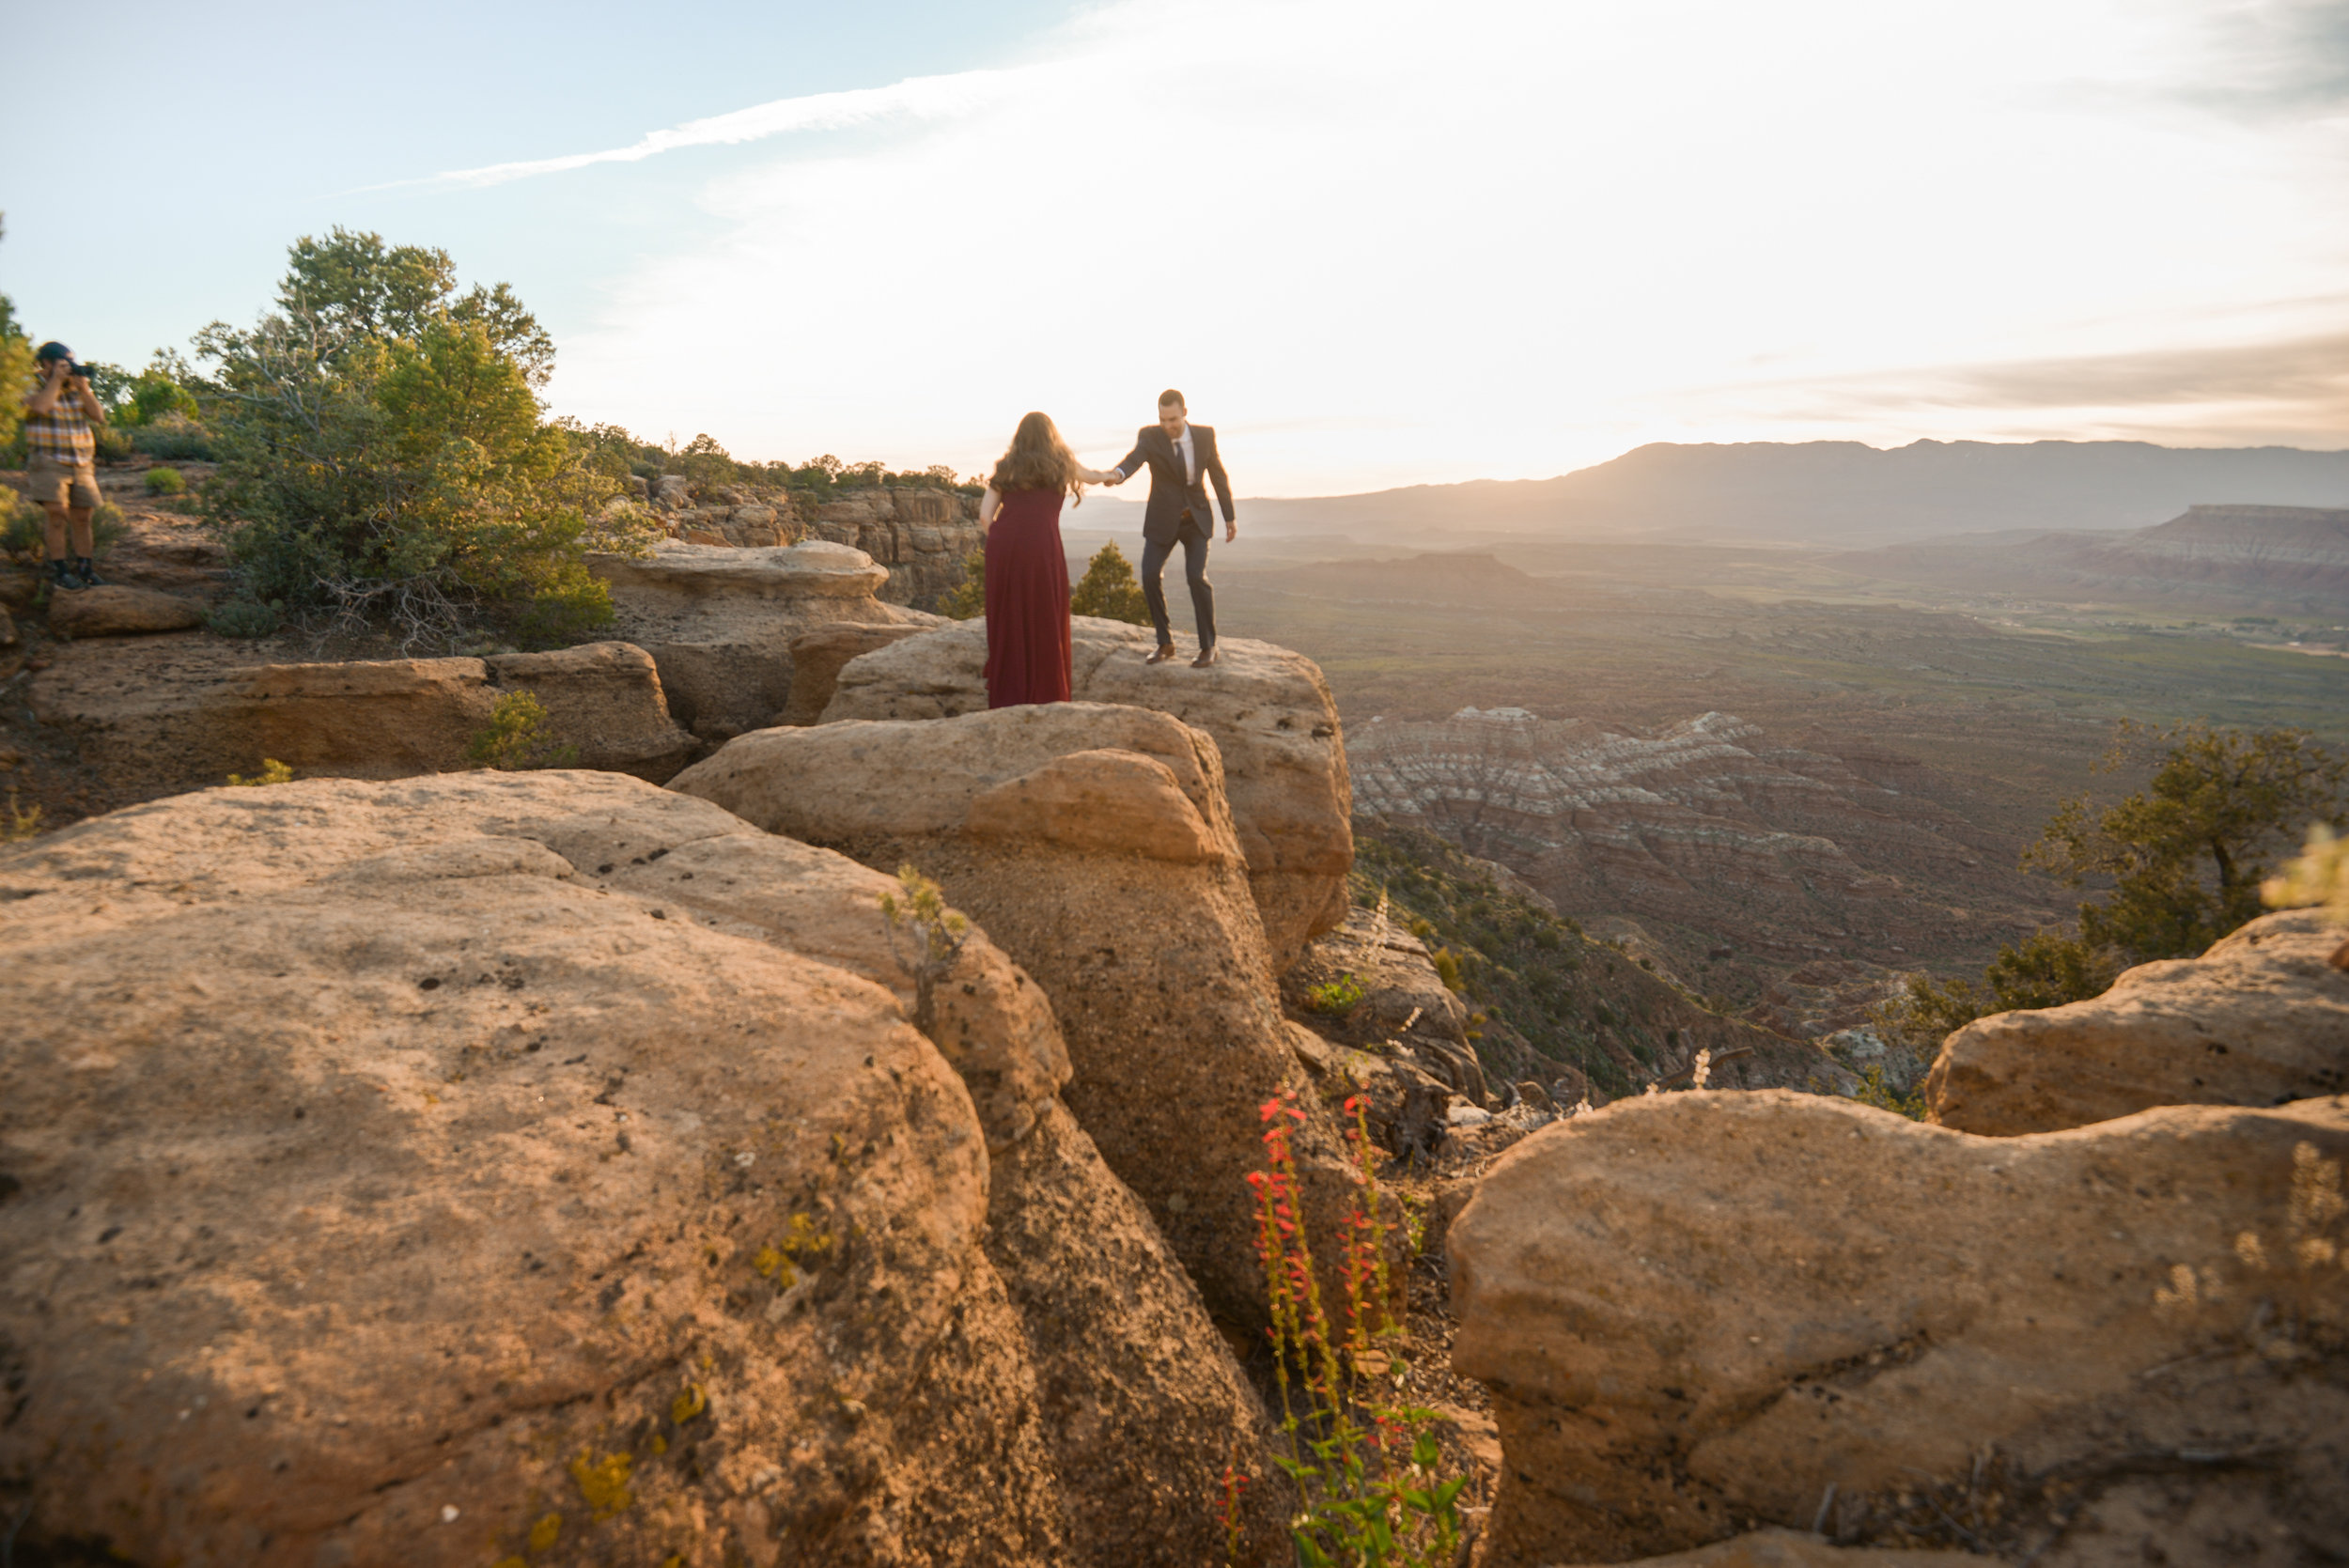 zionnationalparkengagementphotos (52 of 53).jpg